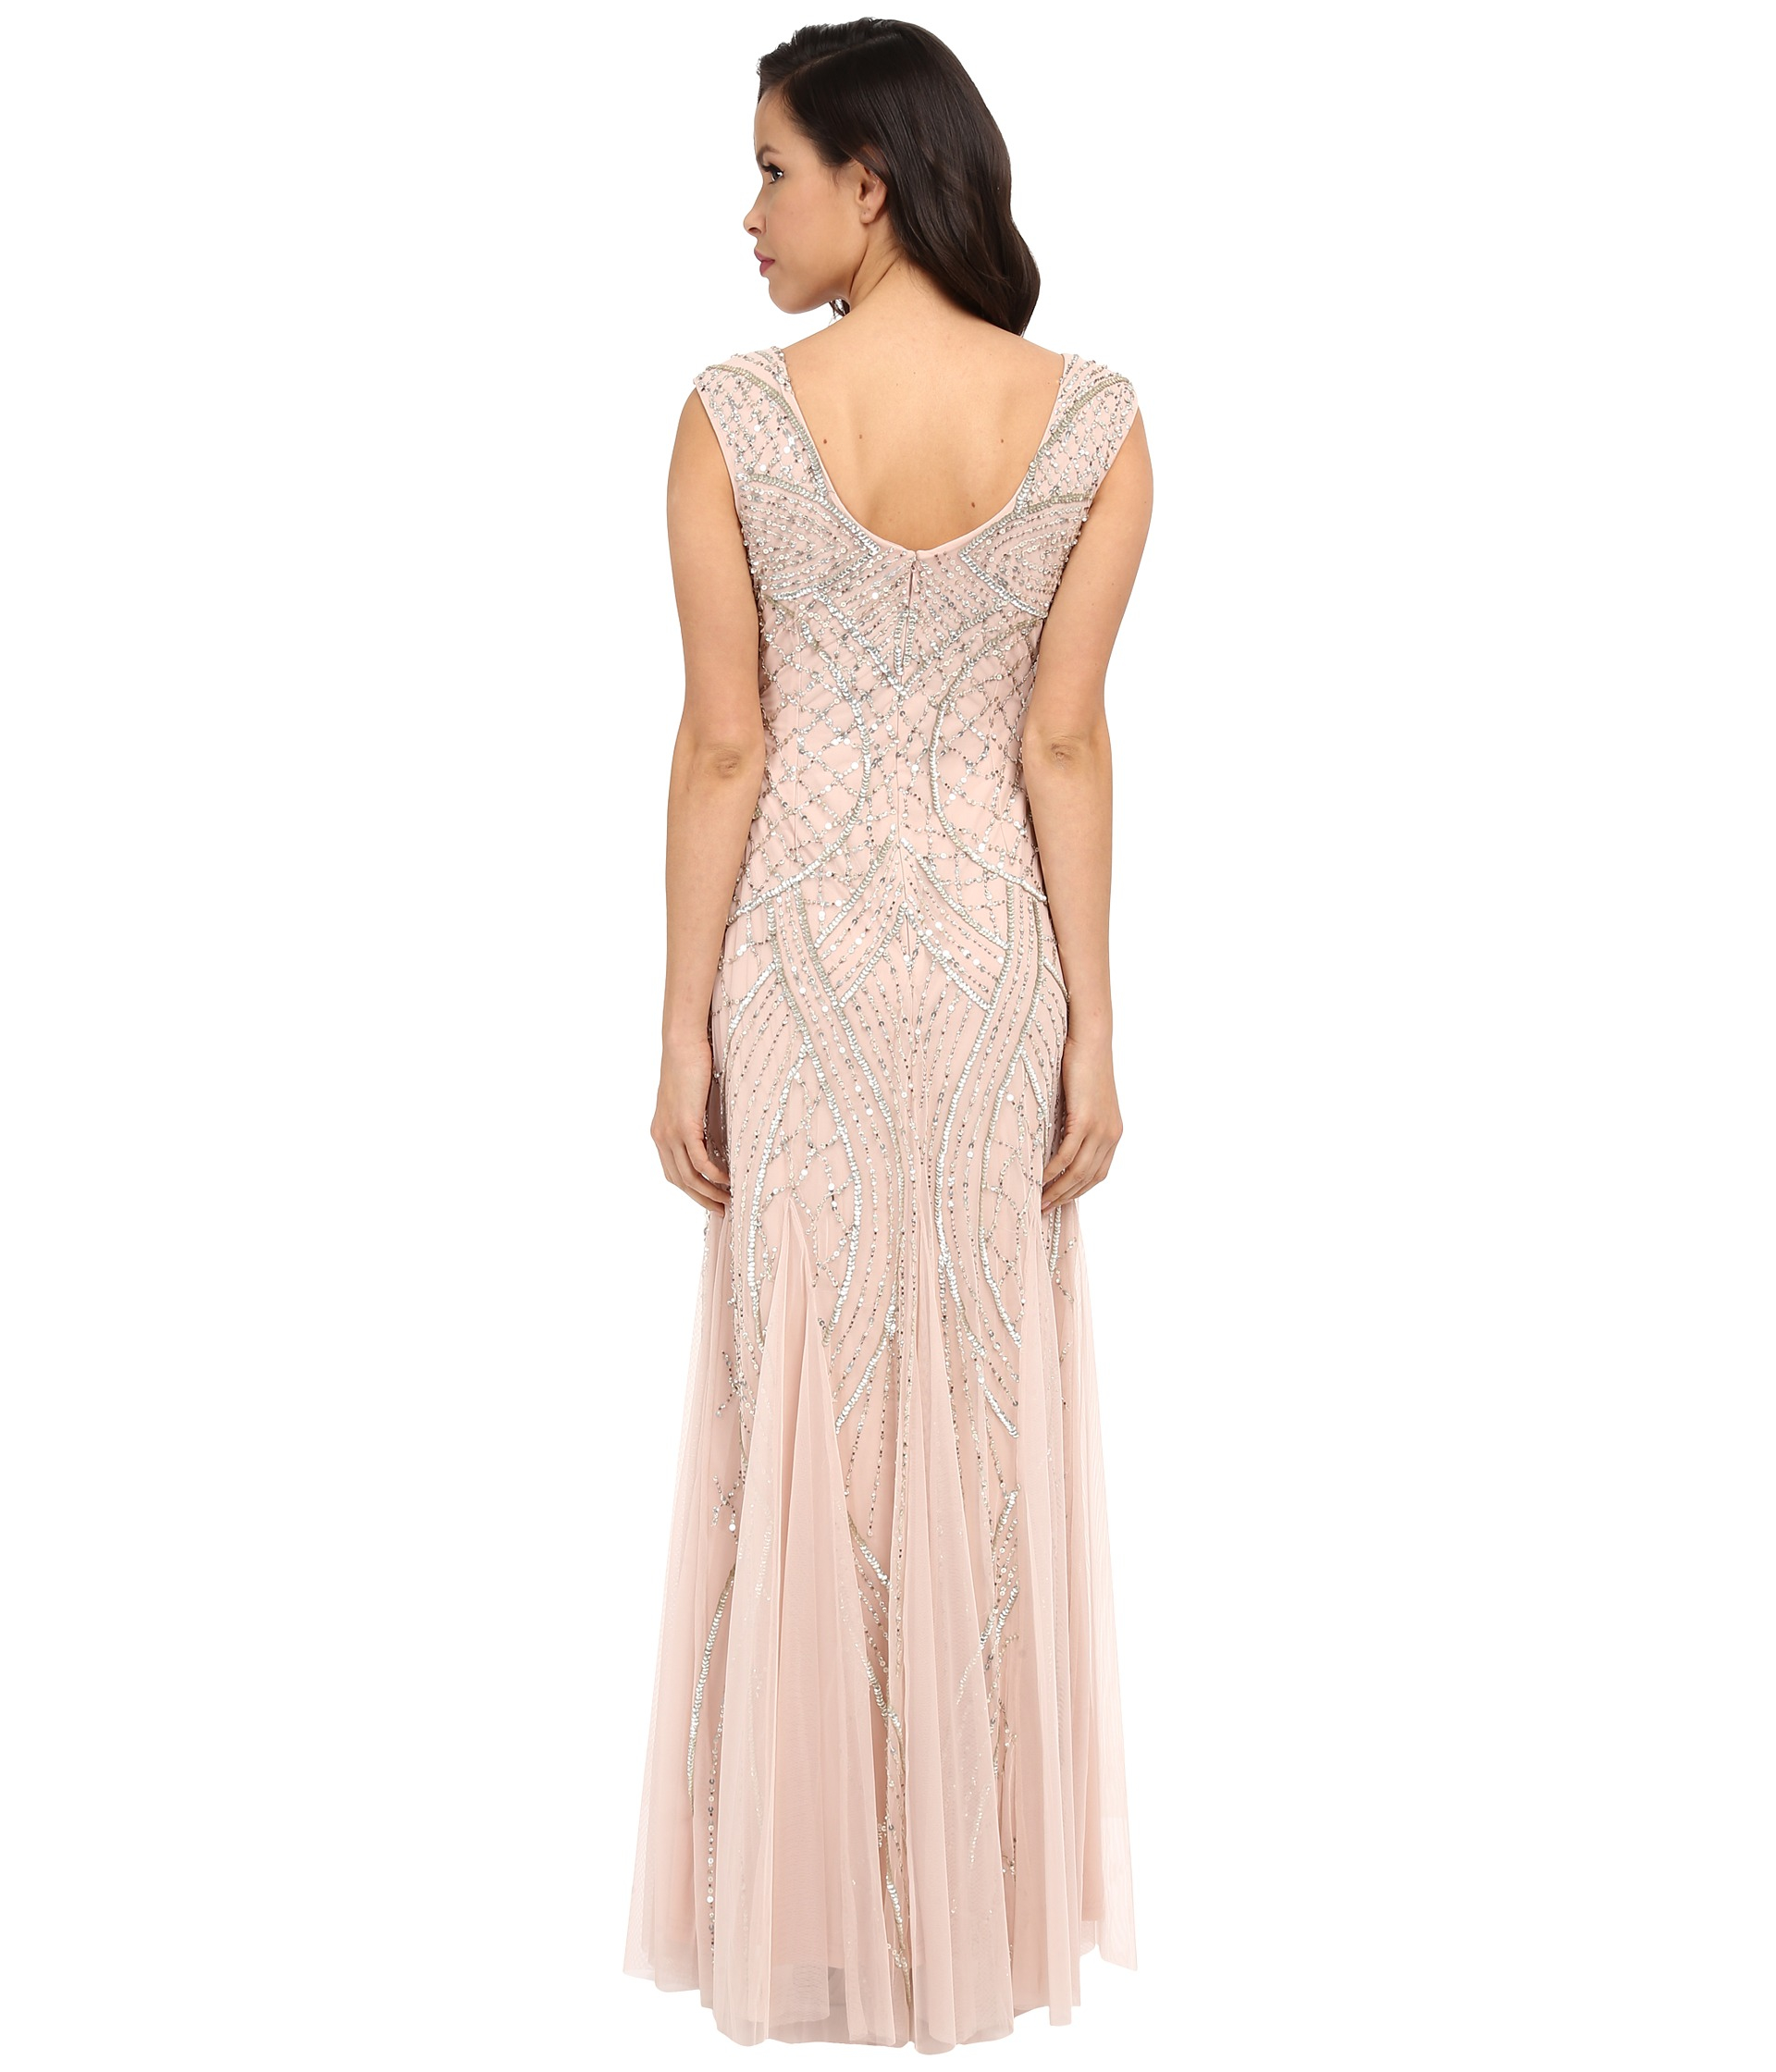 Adrianna Papell Long Evening Dresses – Dresses for Woman